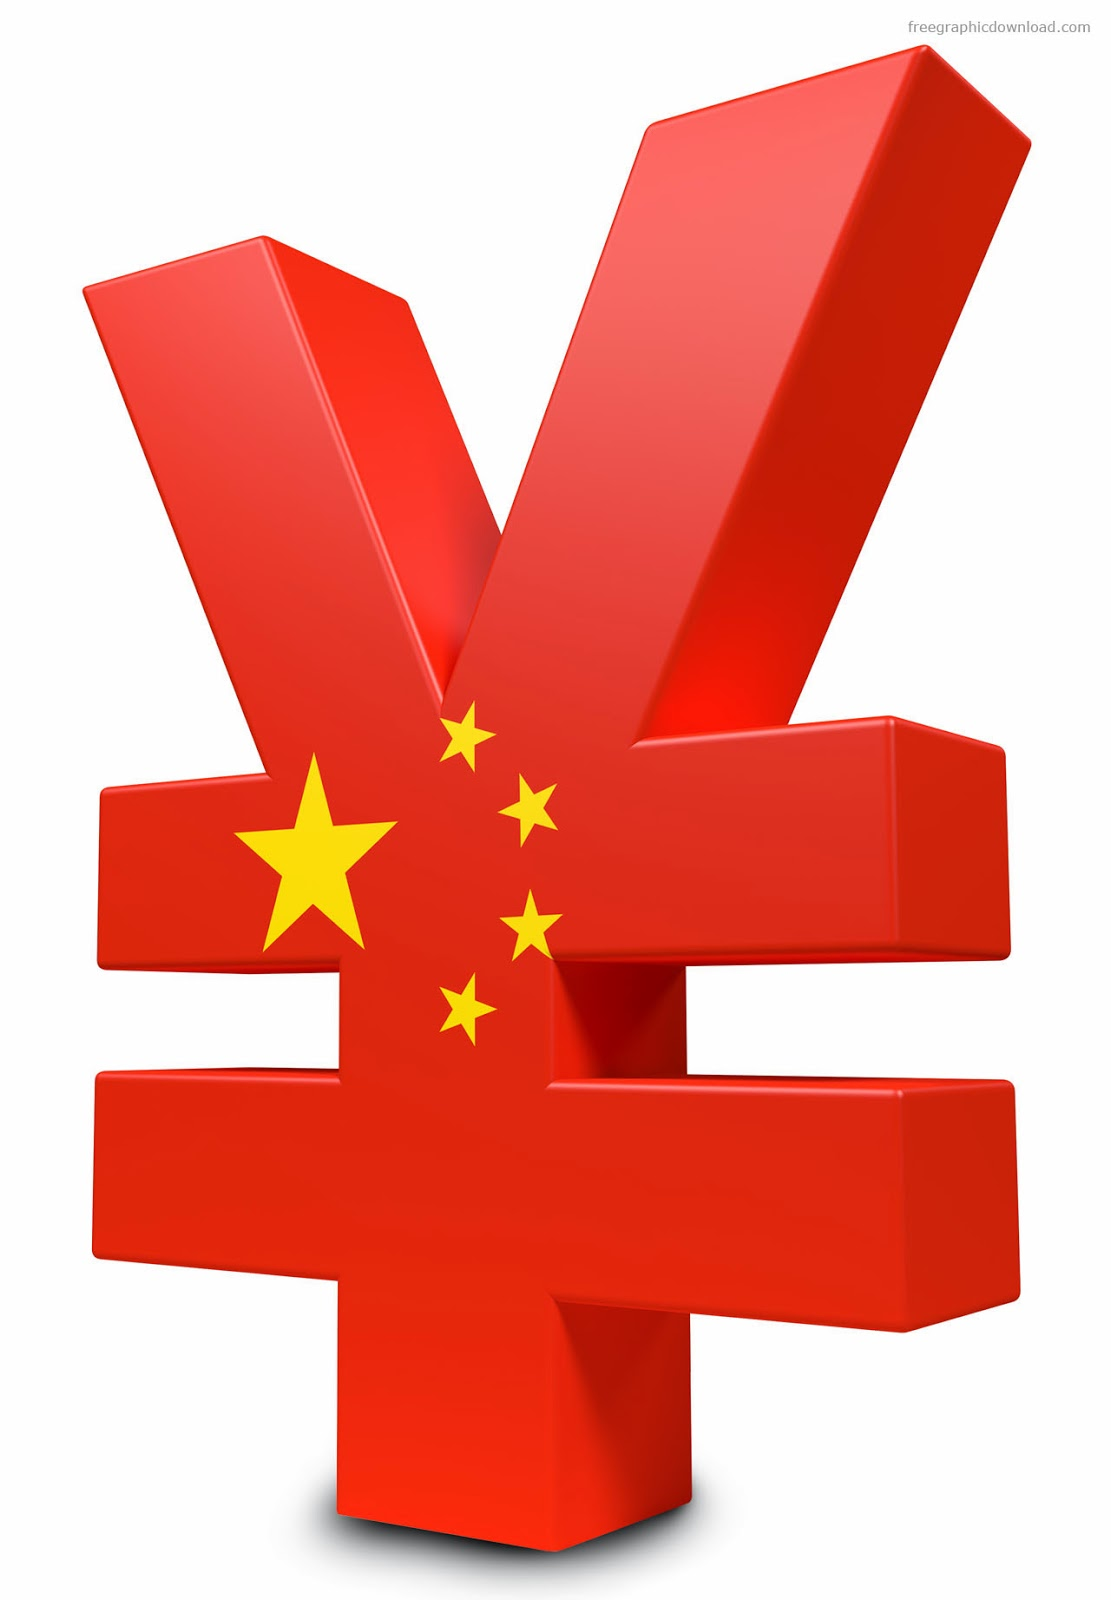 Chinese symbols for money choice image symbol and sign ideas china foreign teachers union china foreign teachers union china foreign teacher salariespay almost lowest in the biocorpaavc